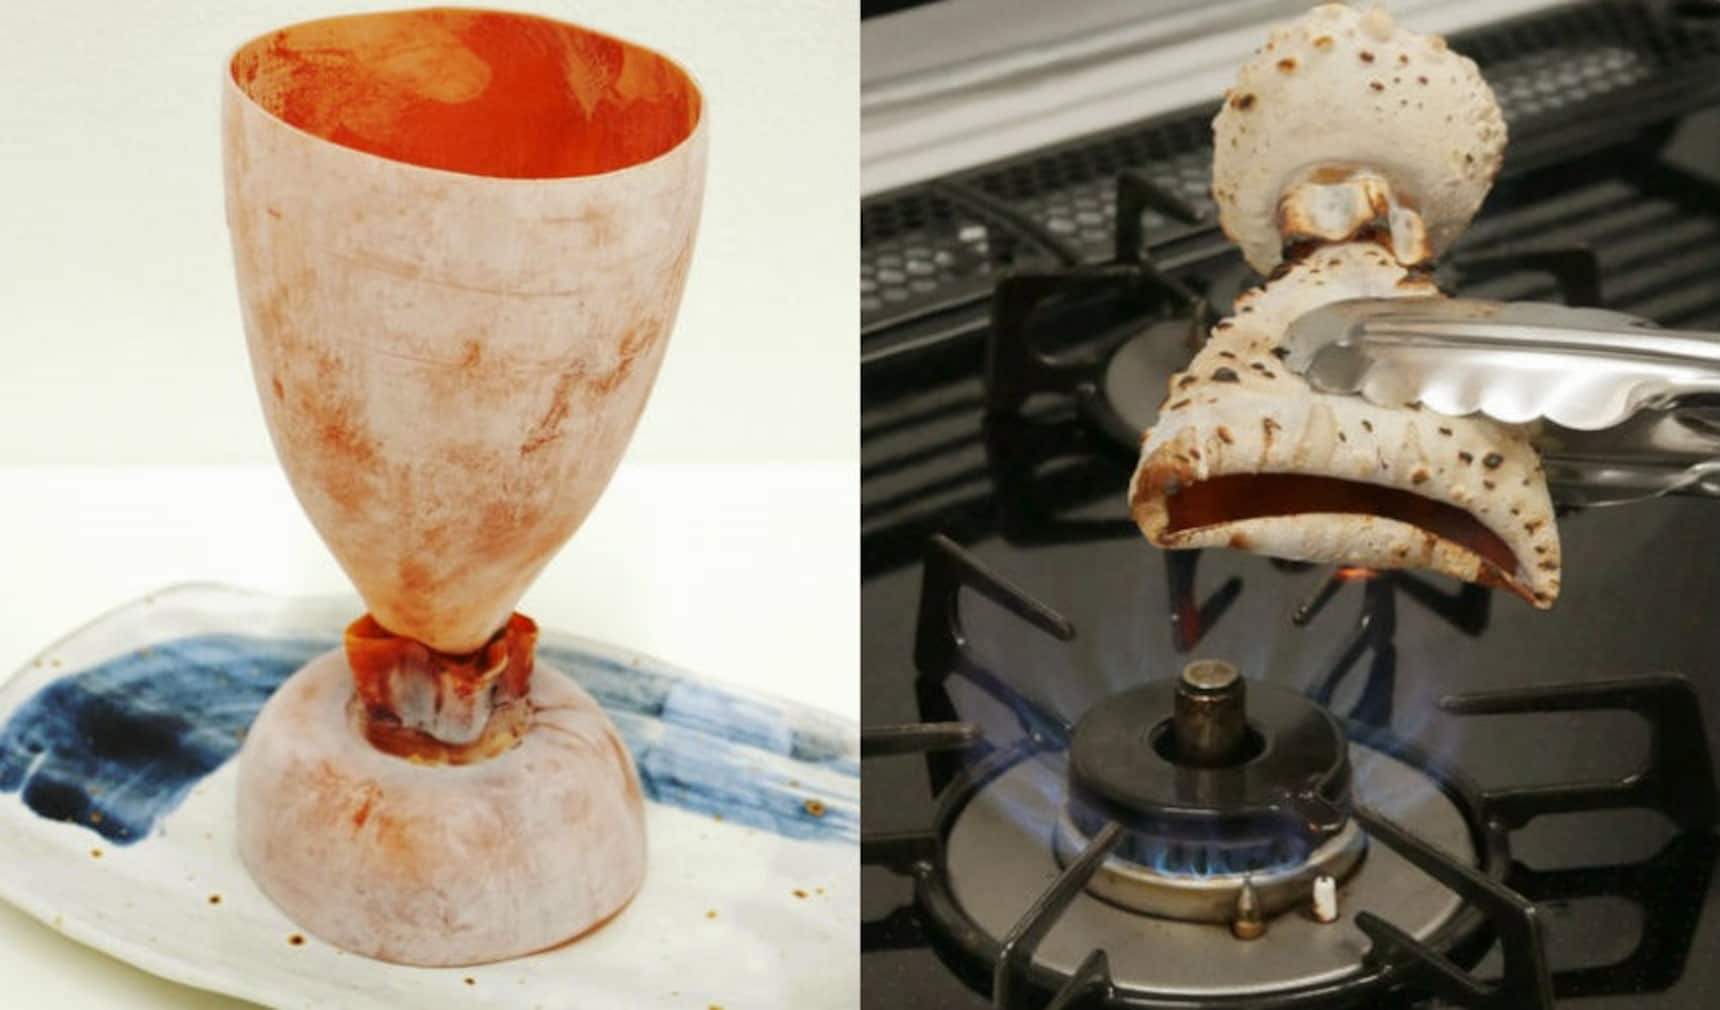 Want to Sip on Sake from a Squid Chalice?